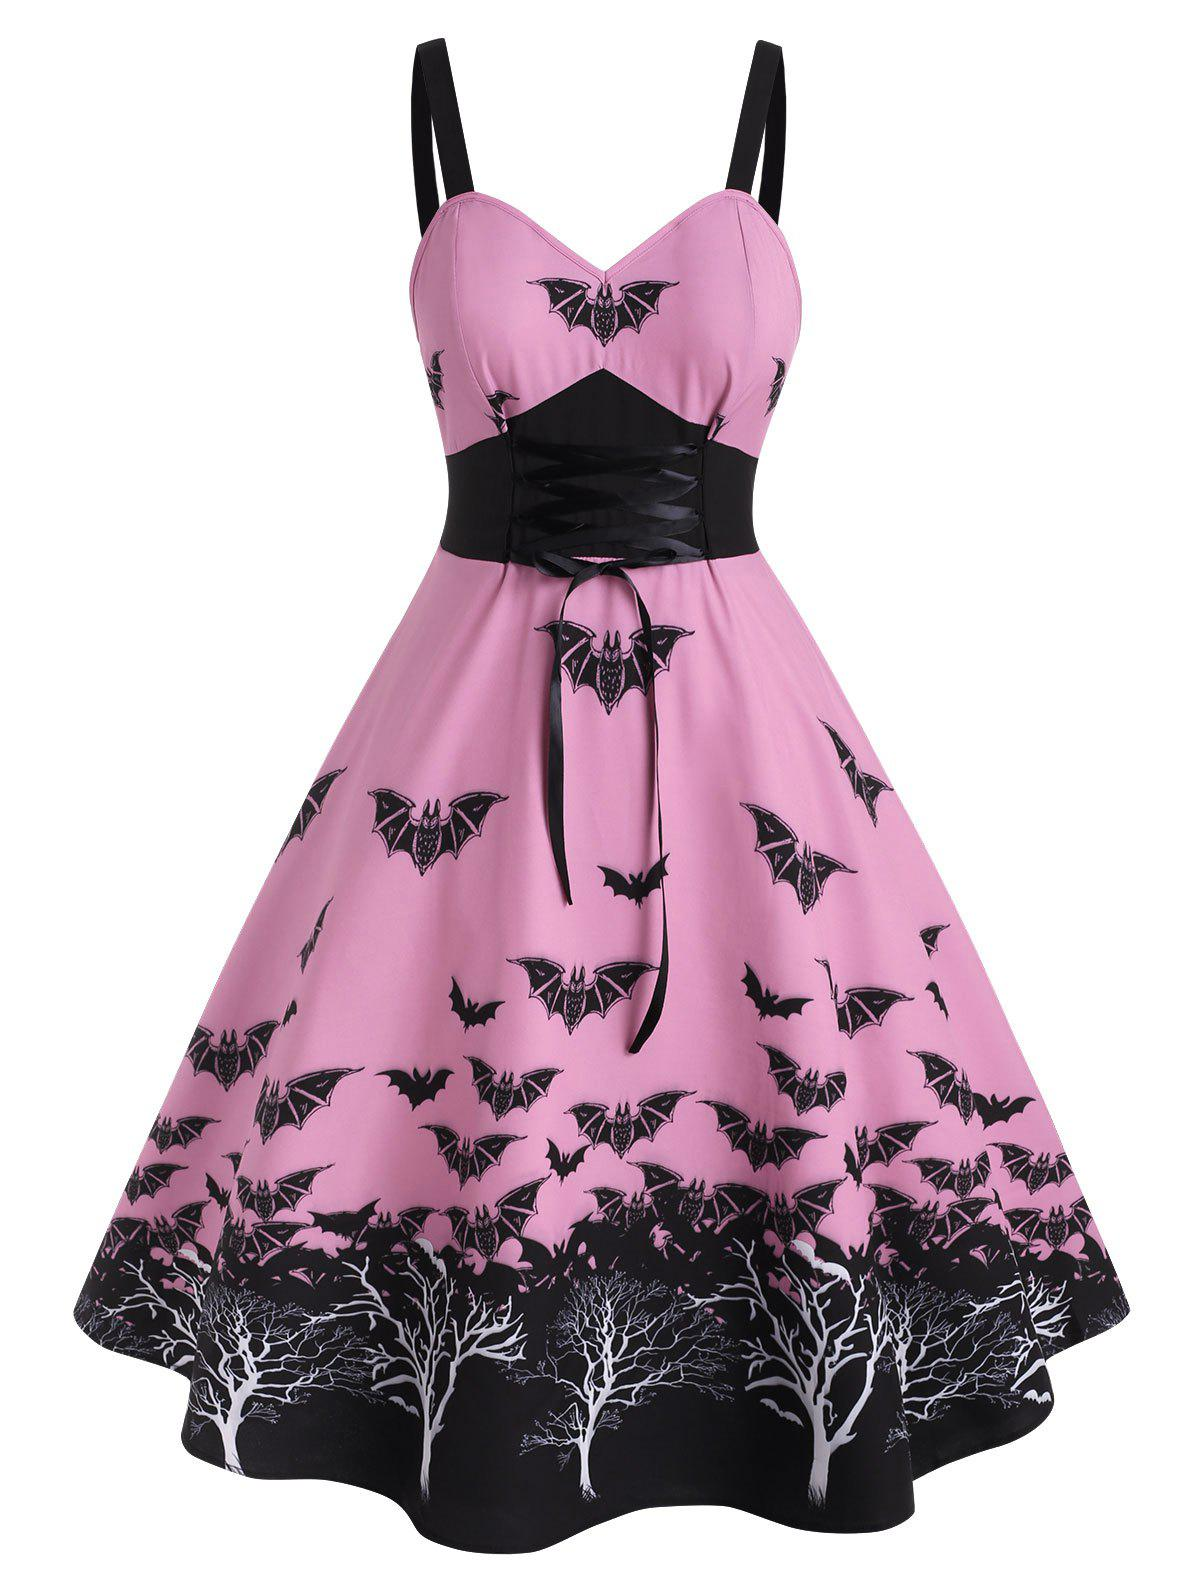 Affordable Plus Size Halloween Vintage Lace Up Bat Print Dress